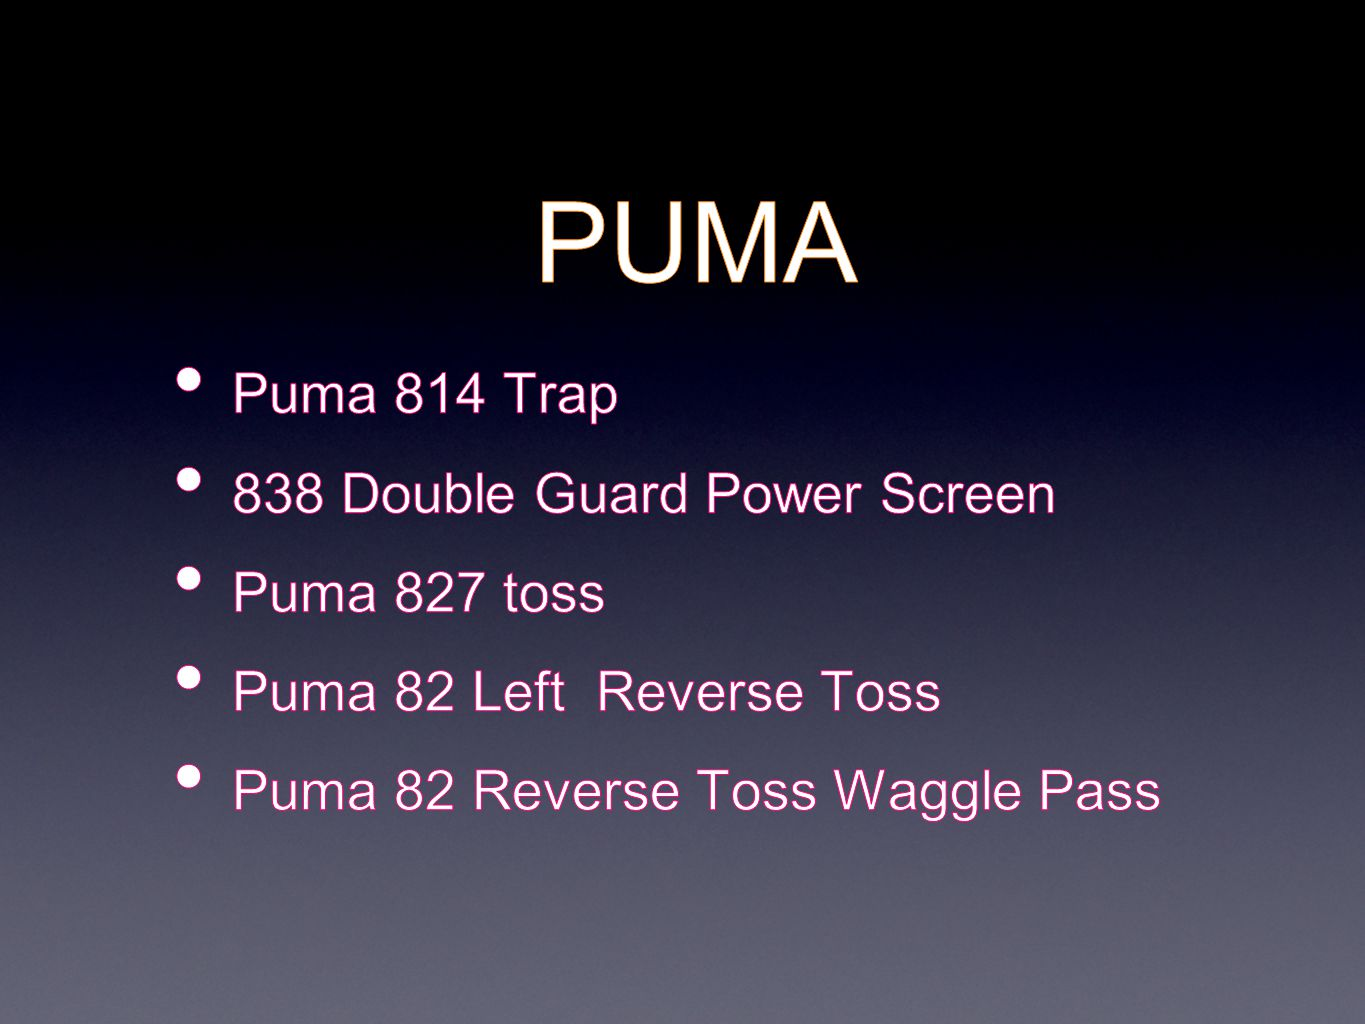 PUMA Puma 814 Trap 838 Double Guard Power Screen Puma 827 toss